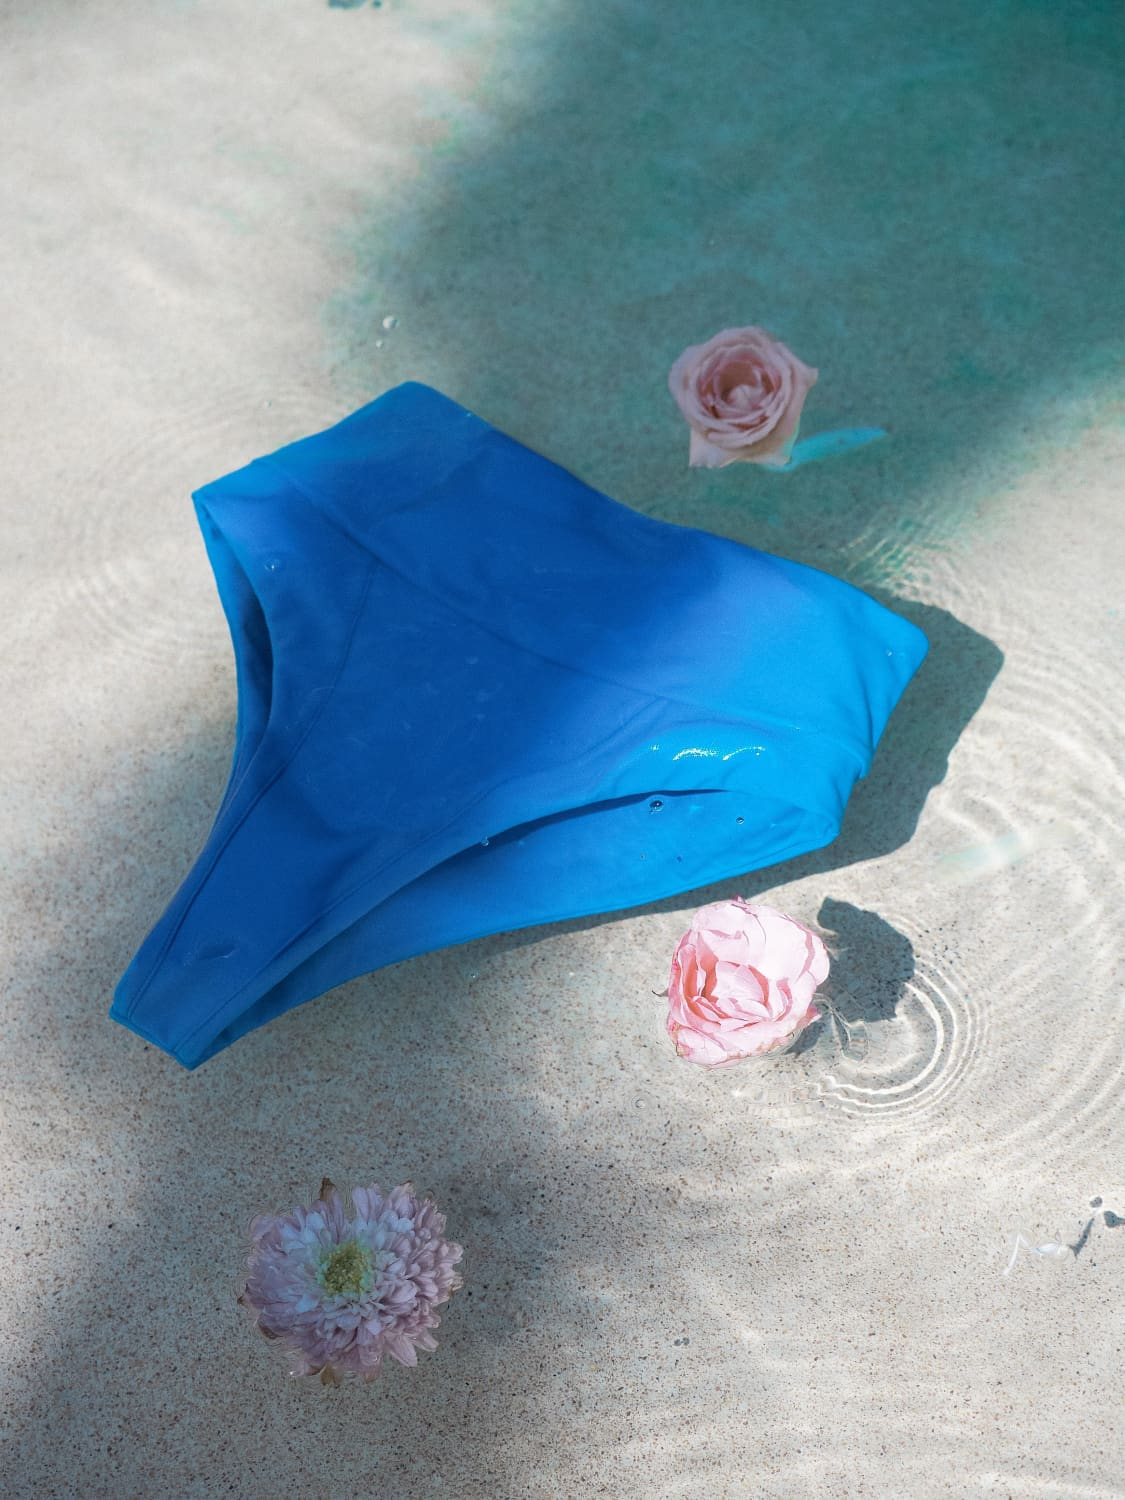 a person lying on a blue surface